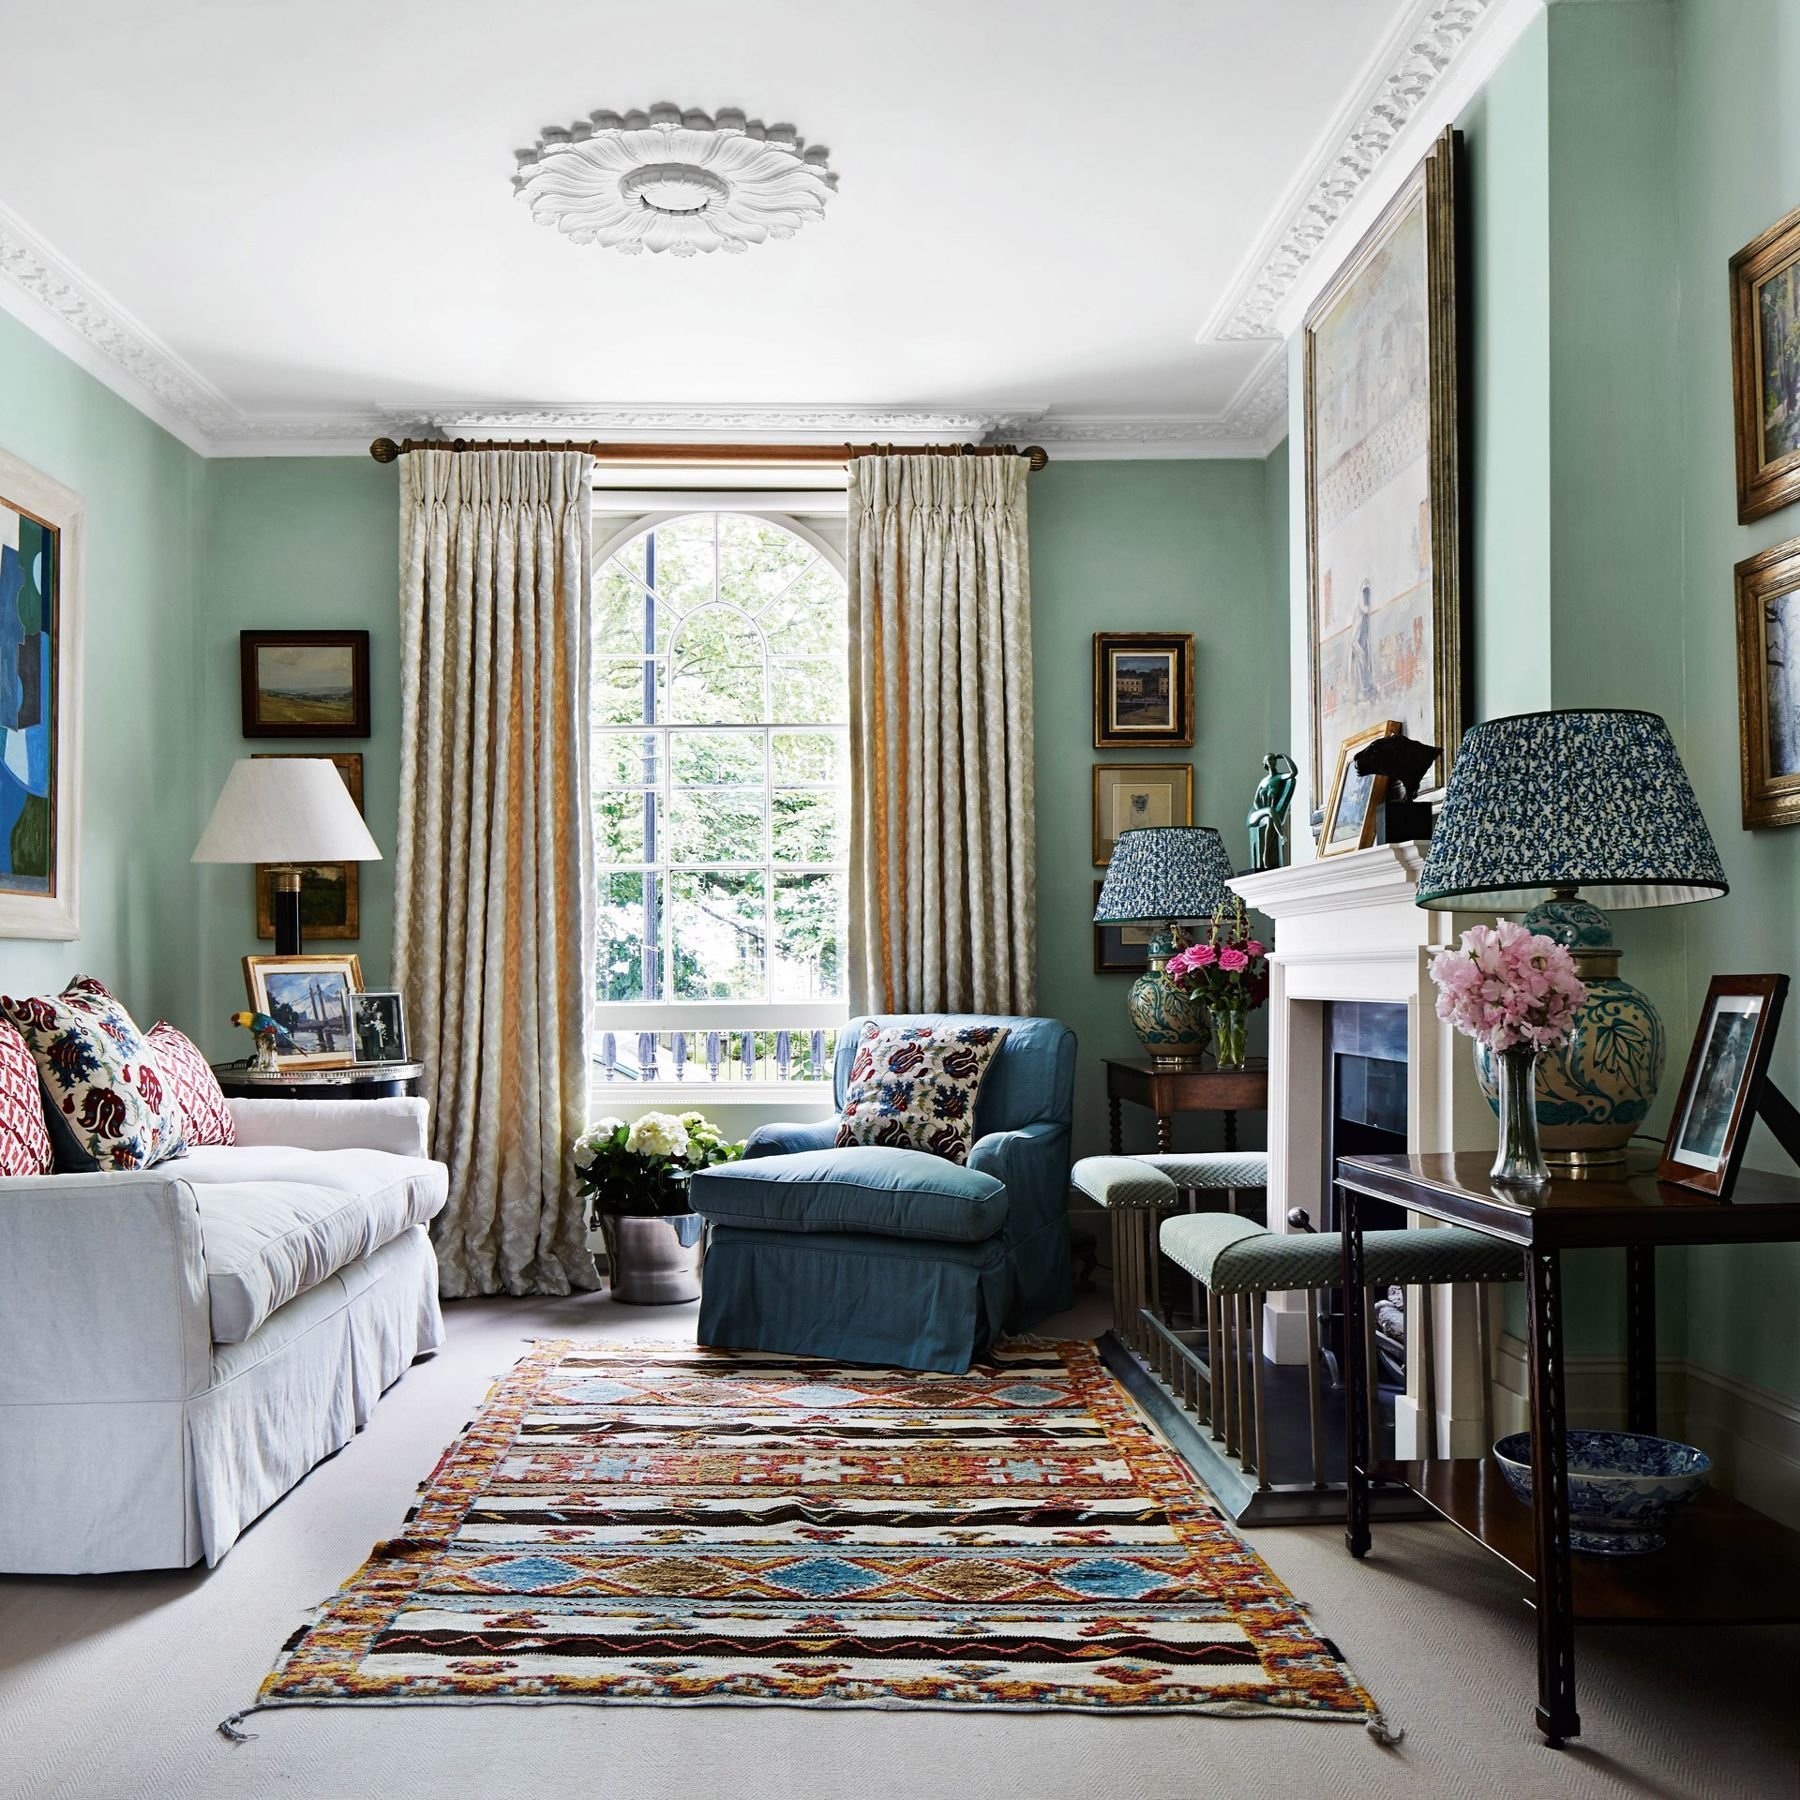 Victorian Living Room: Interior Designer Penny Morrison Had The Task Of Turning